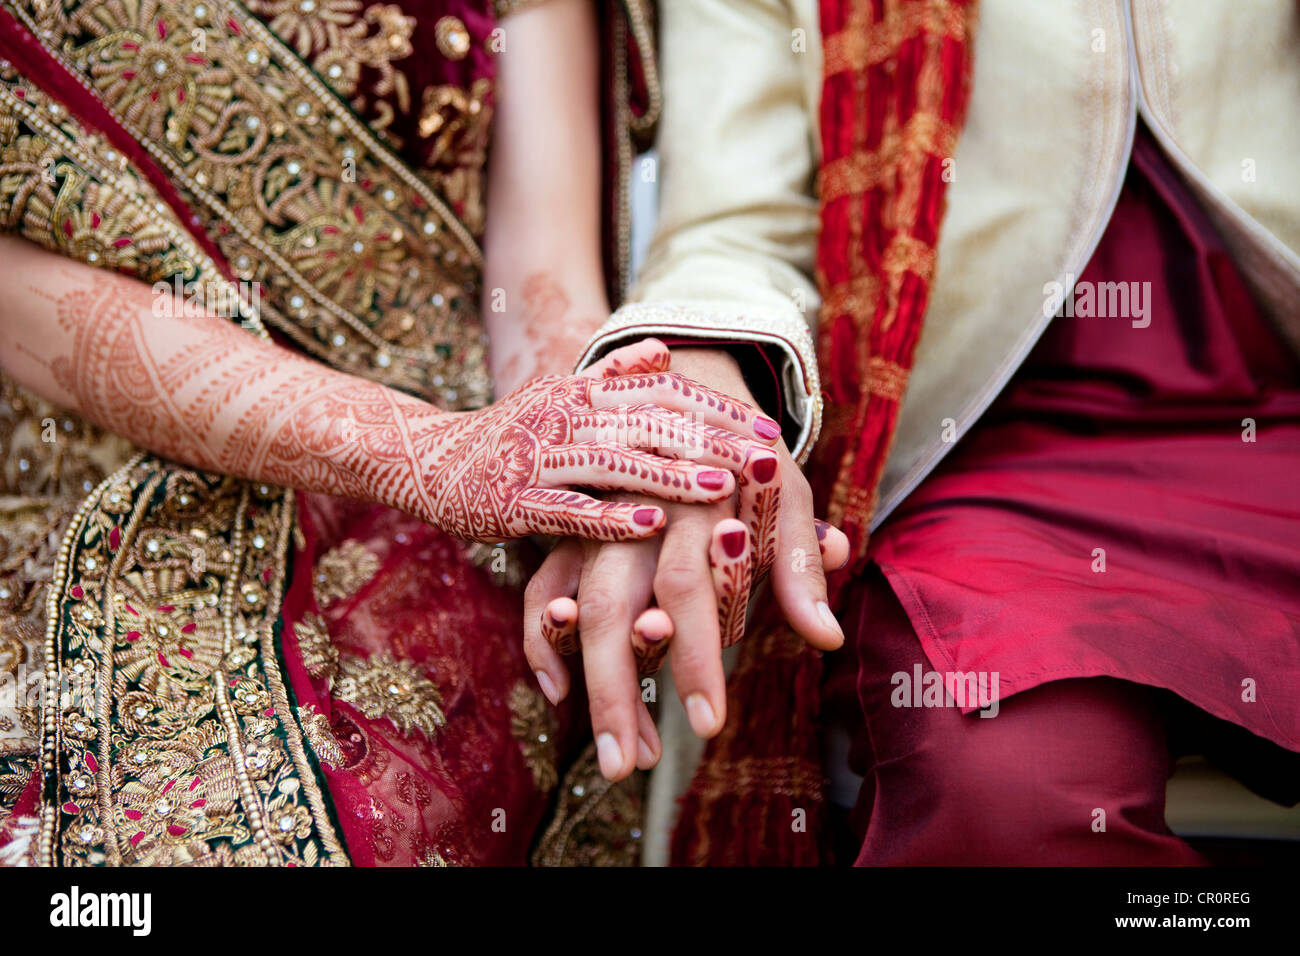 Bride and groom in traditional Indian wedding clothing with henna tattoos Stock Photo